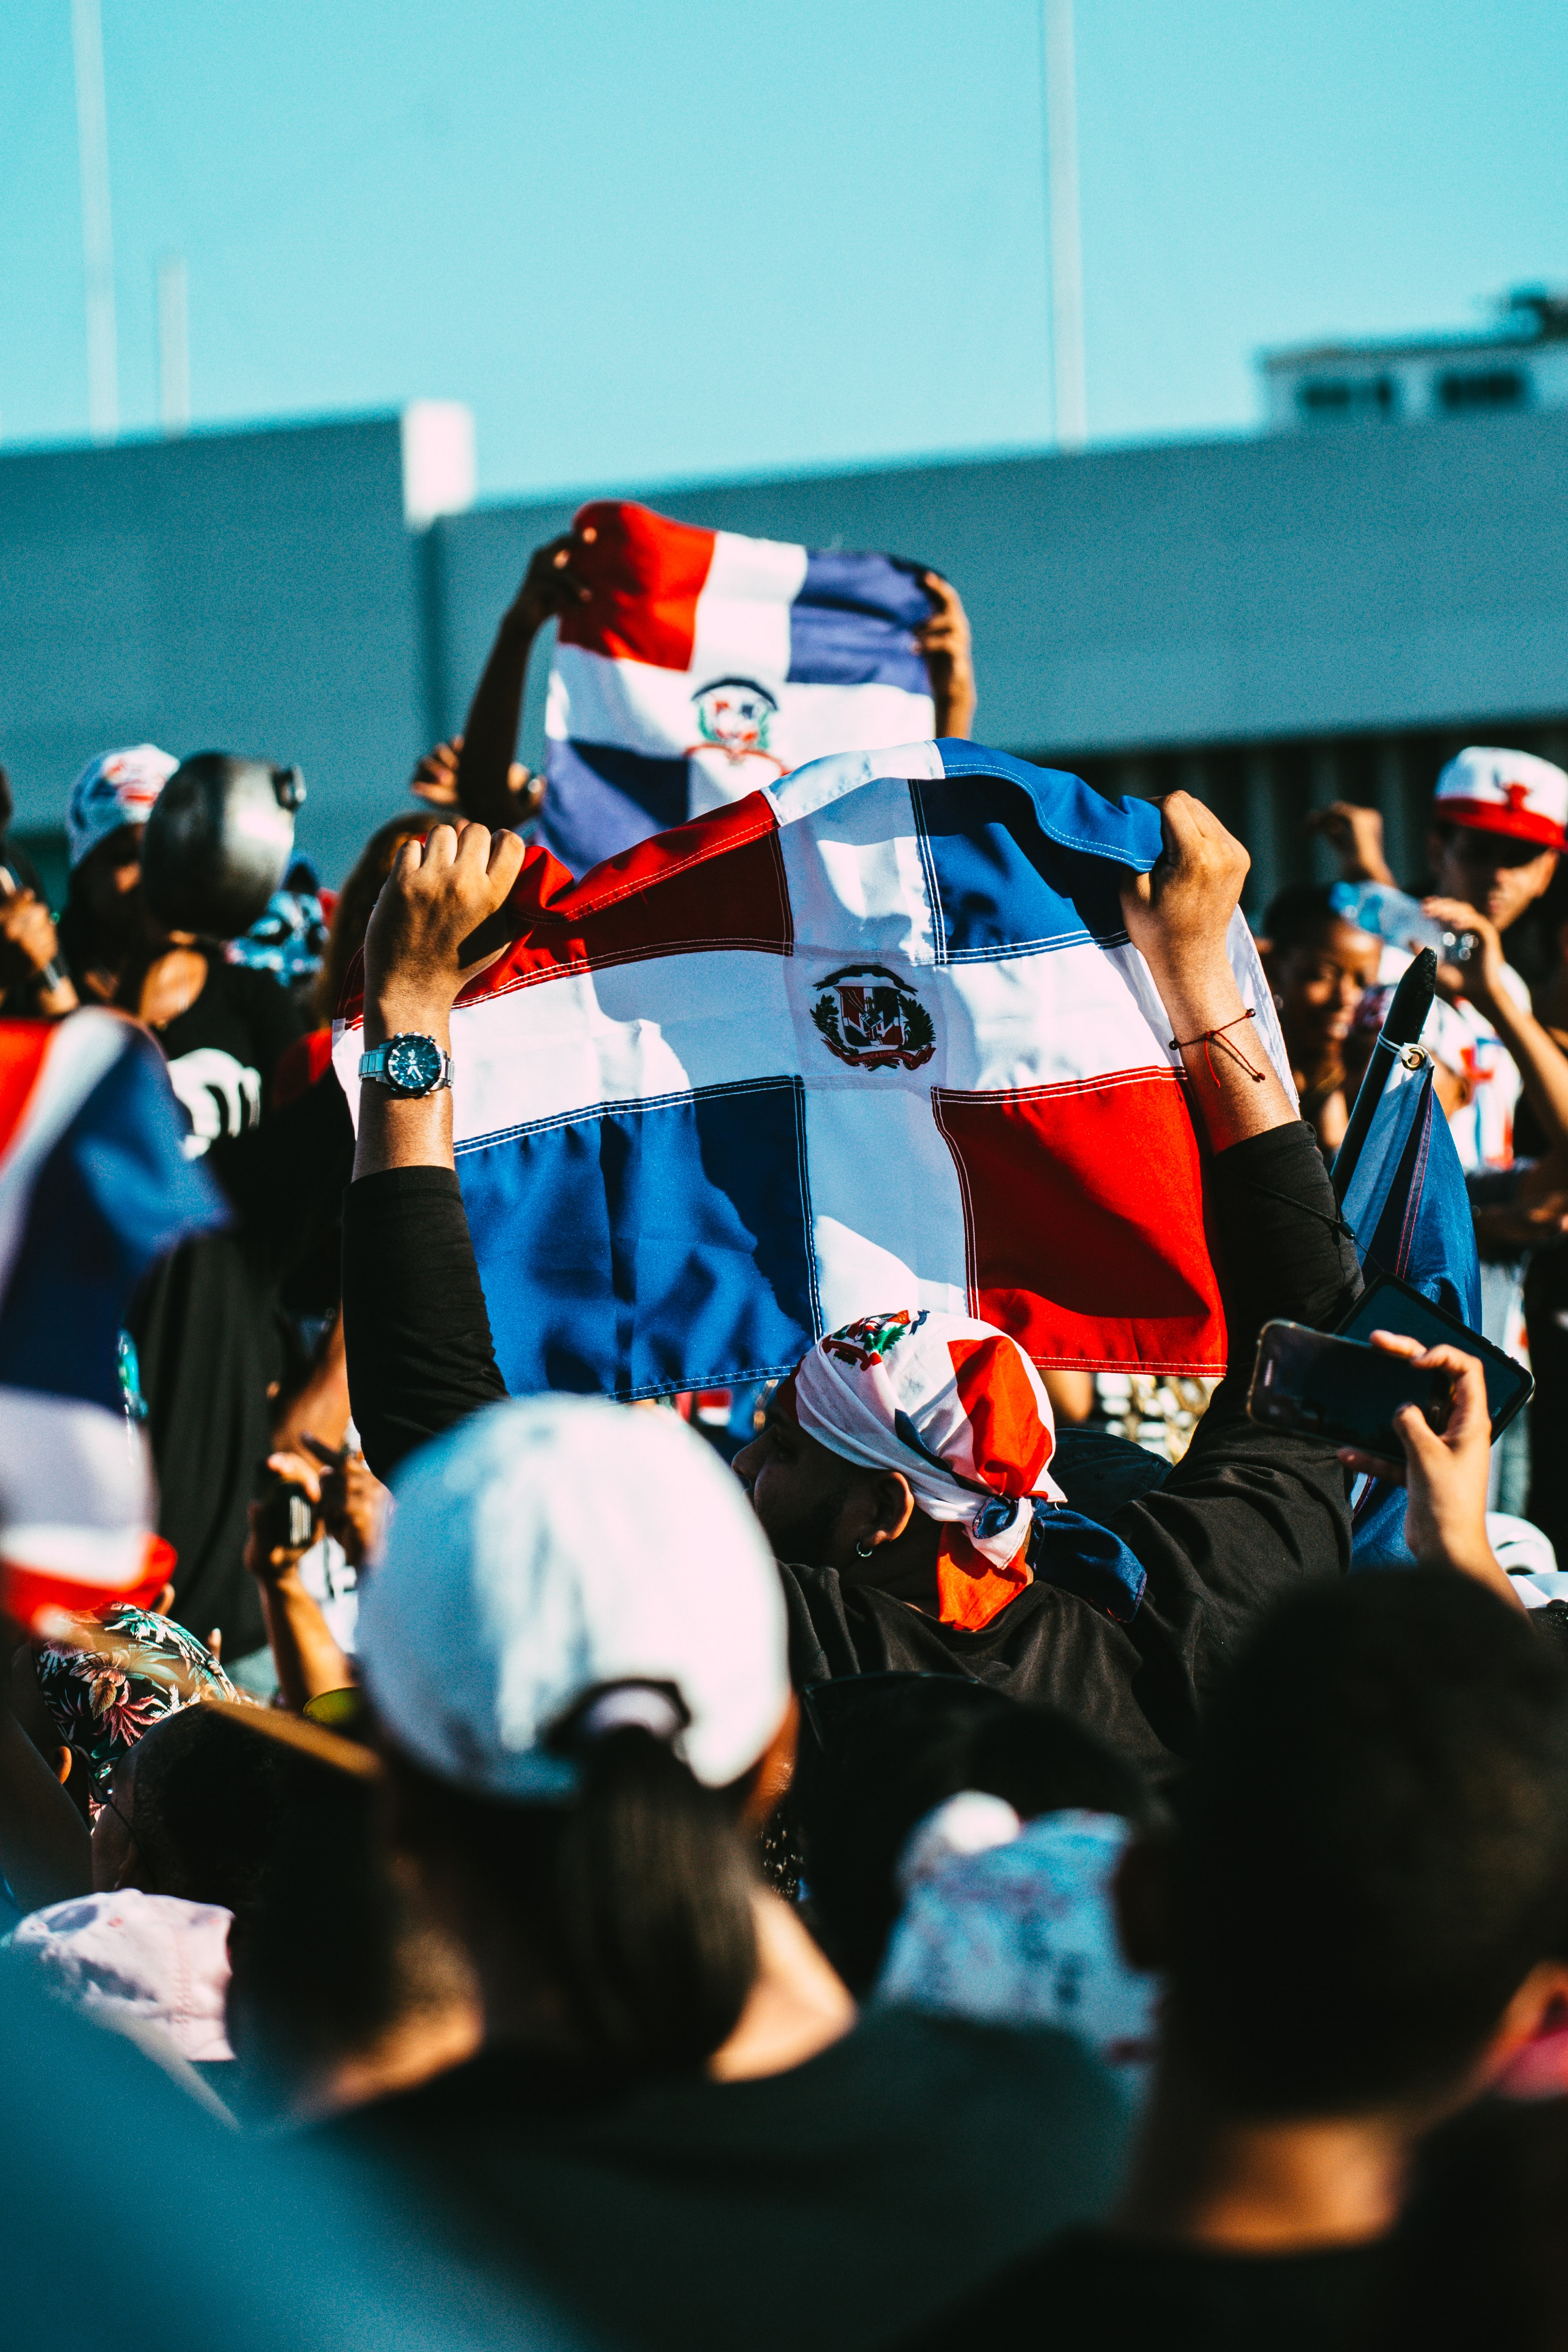 A gathering of people hold Dominican Republic flags in the air. Photo courtesy of Kelvin Moquete on Unsplash.